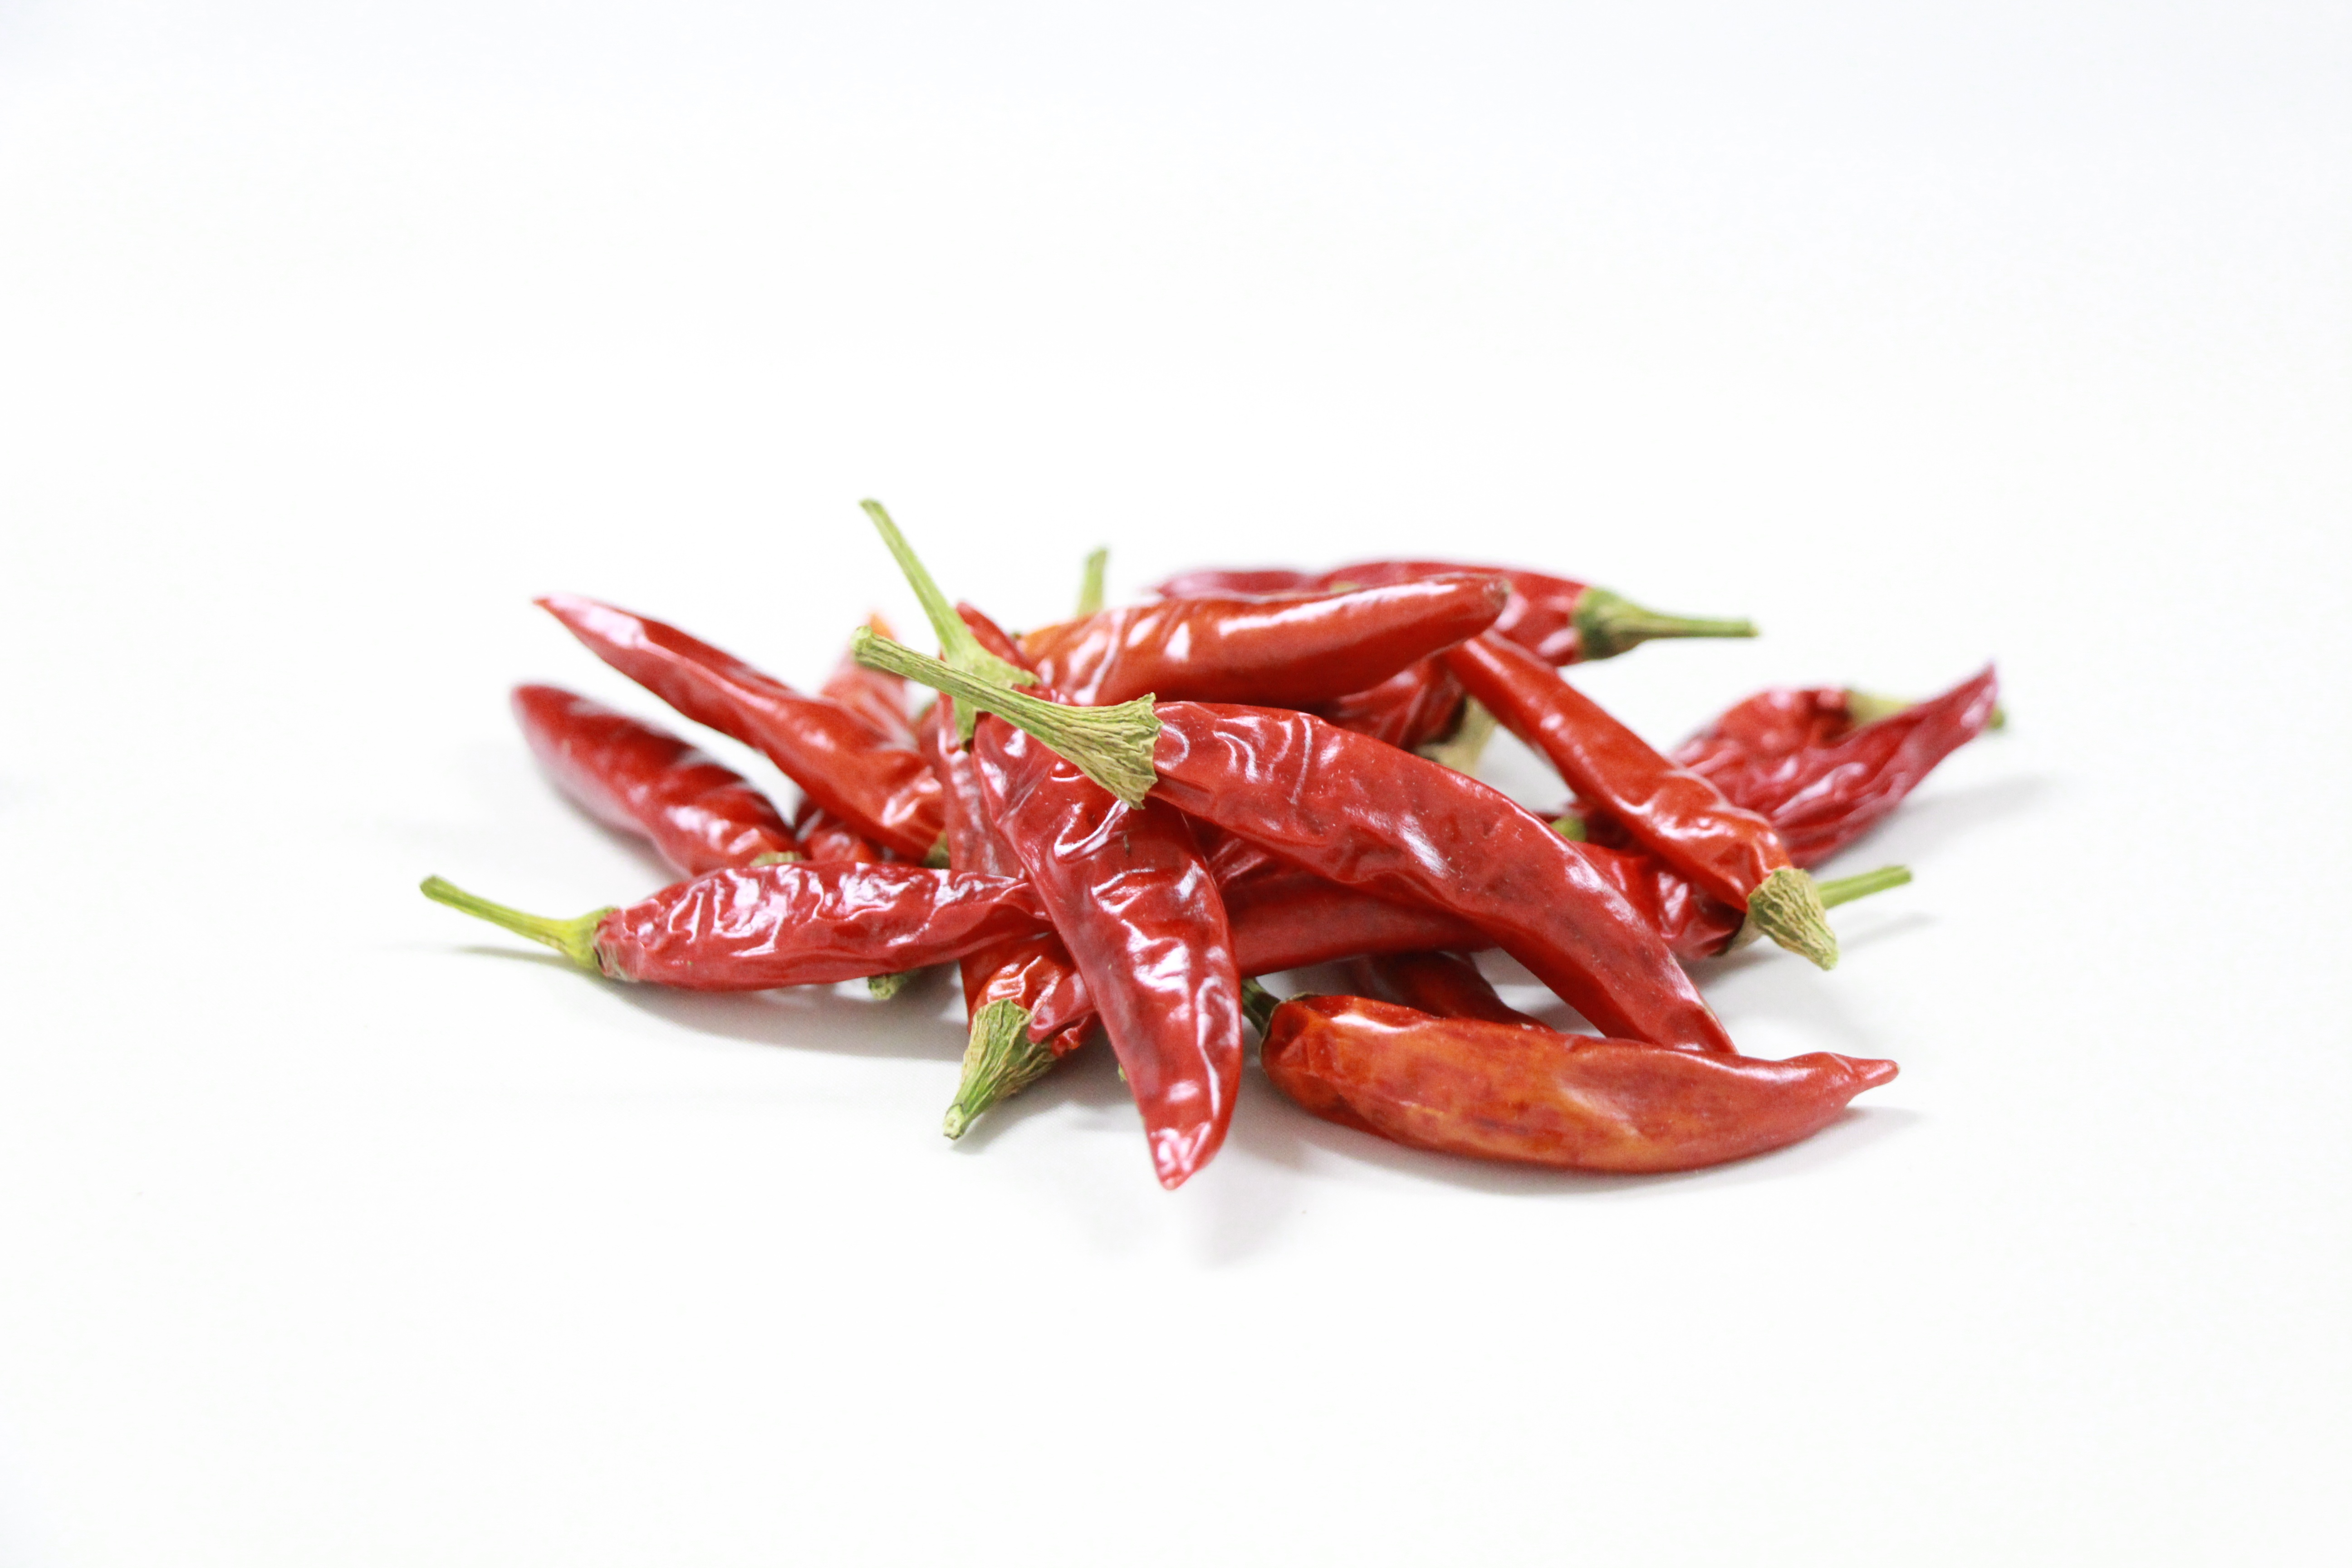 Spicy foods cause heartburn and indegestion